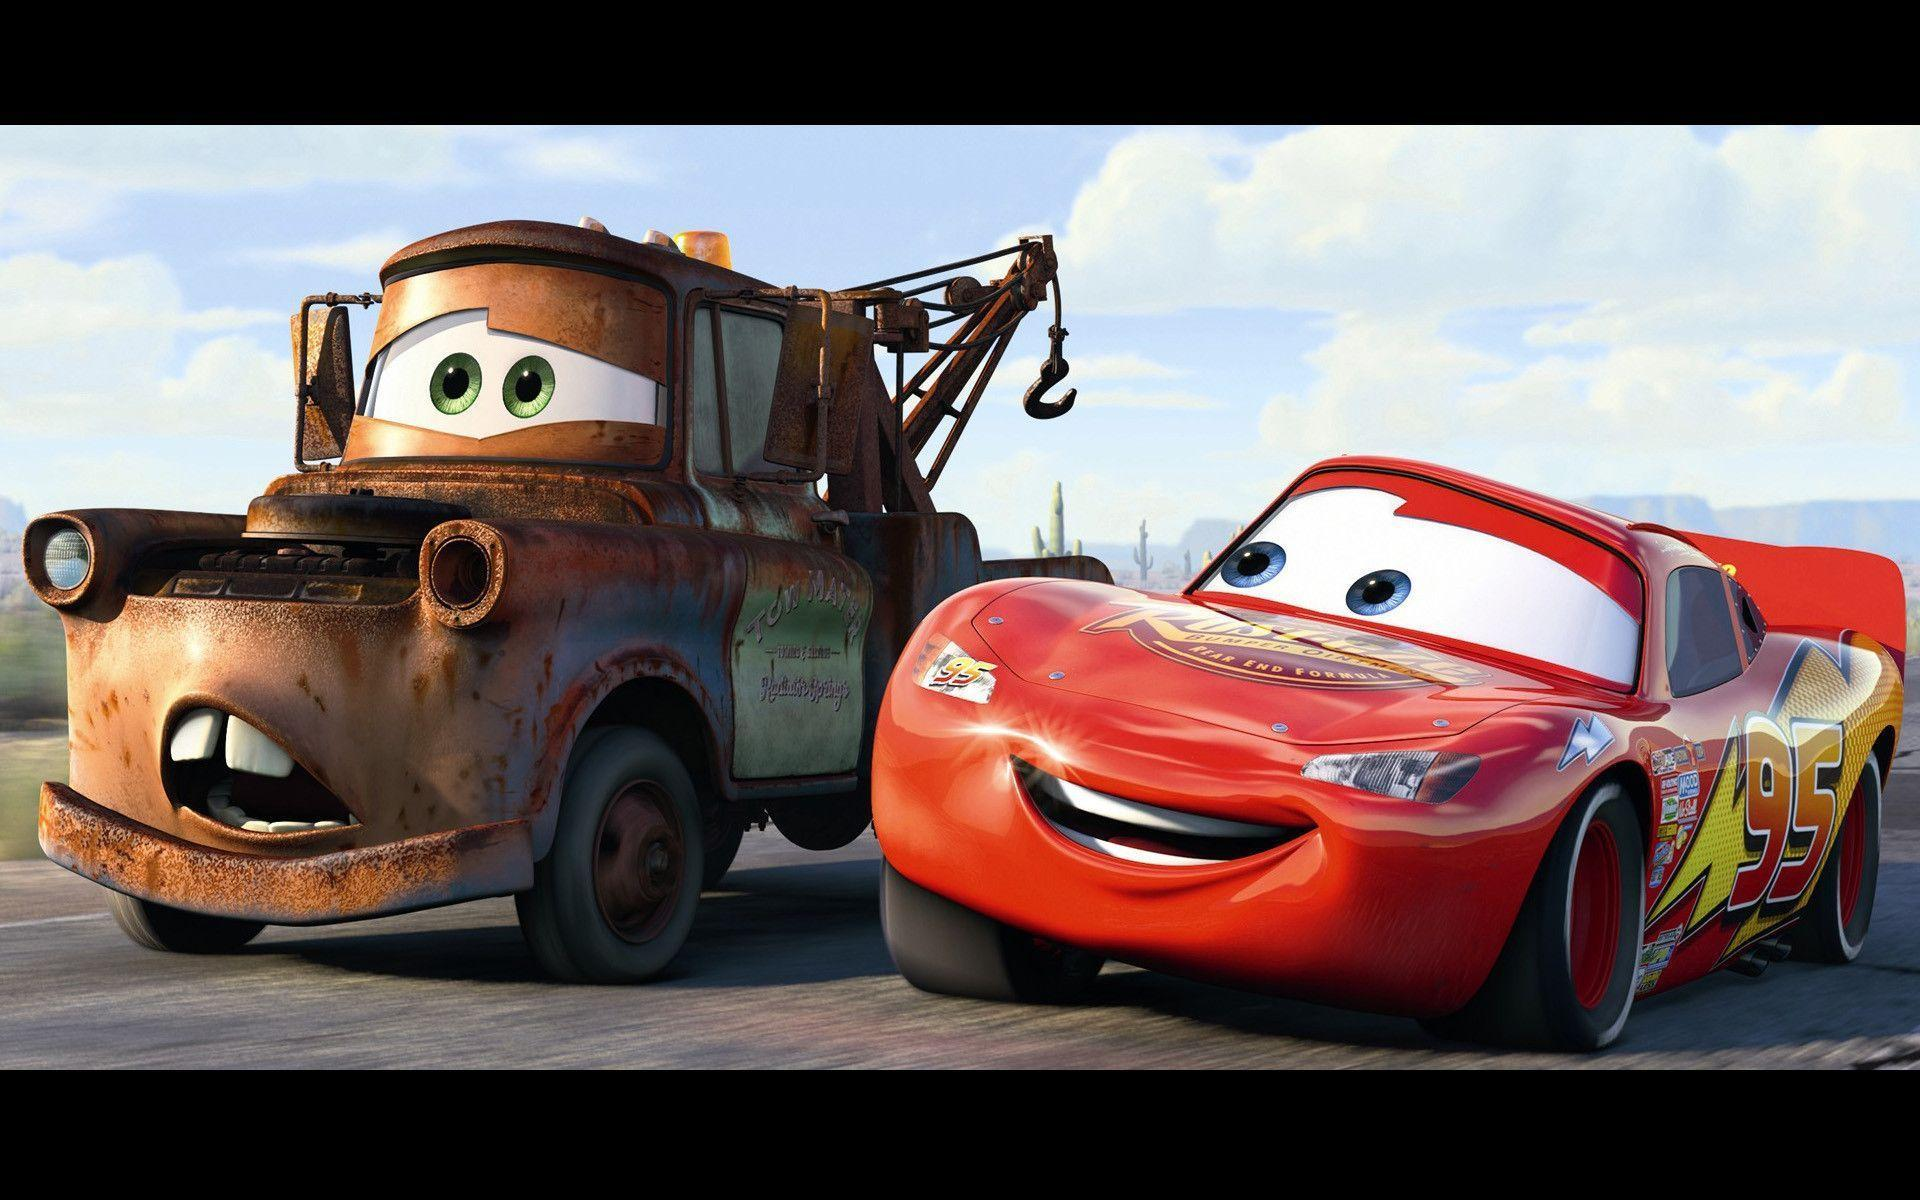 cars cartoon mcqueen animation lightning desktop wallpapers mater cartoons movies nexus 2006 disney library clipart colors cave drawings wallpapercave